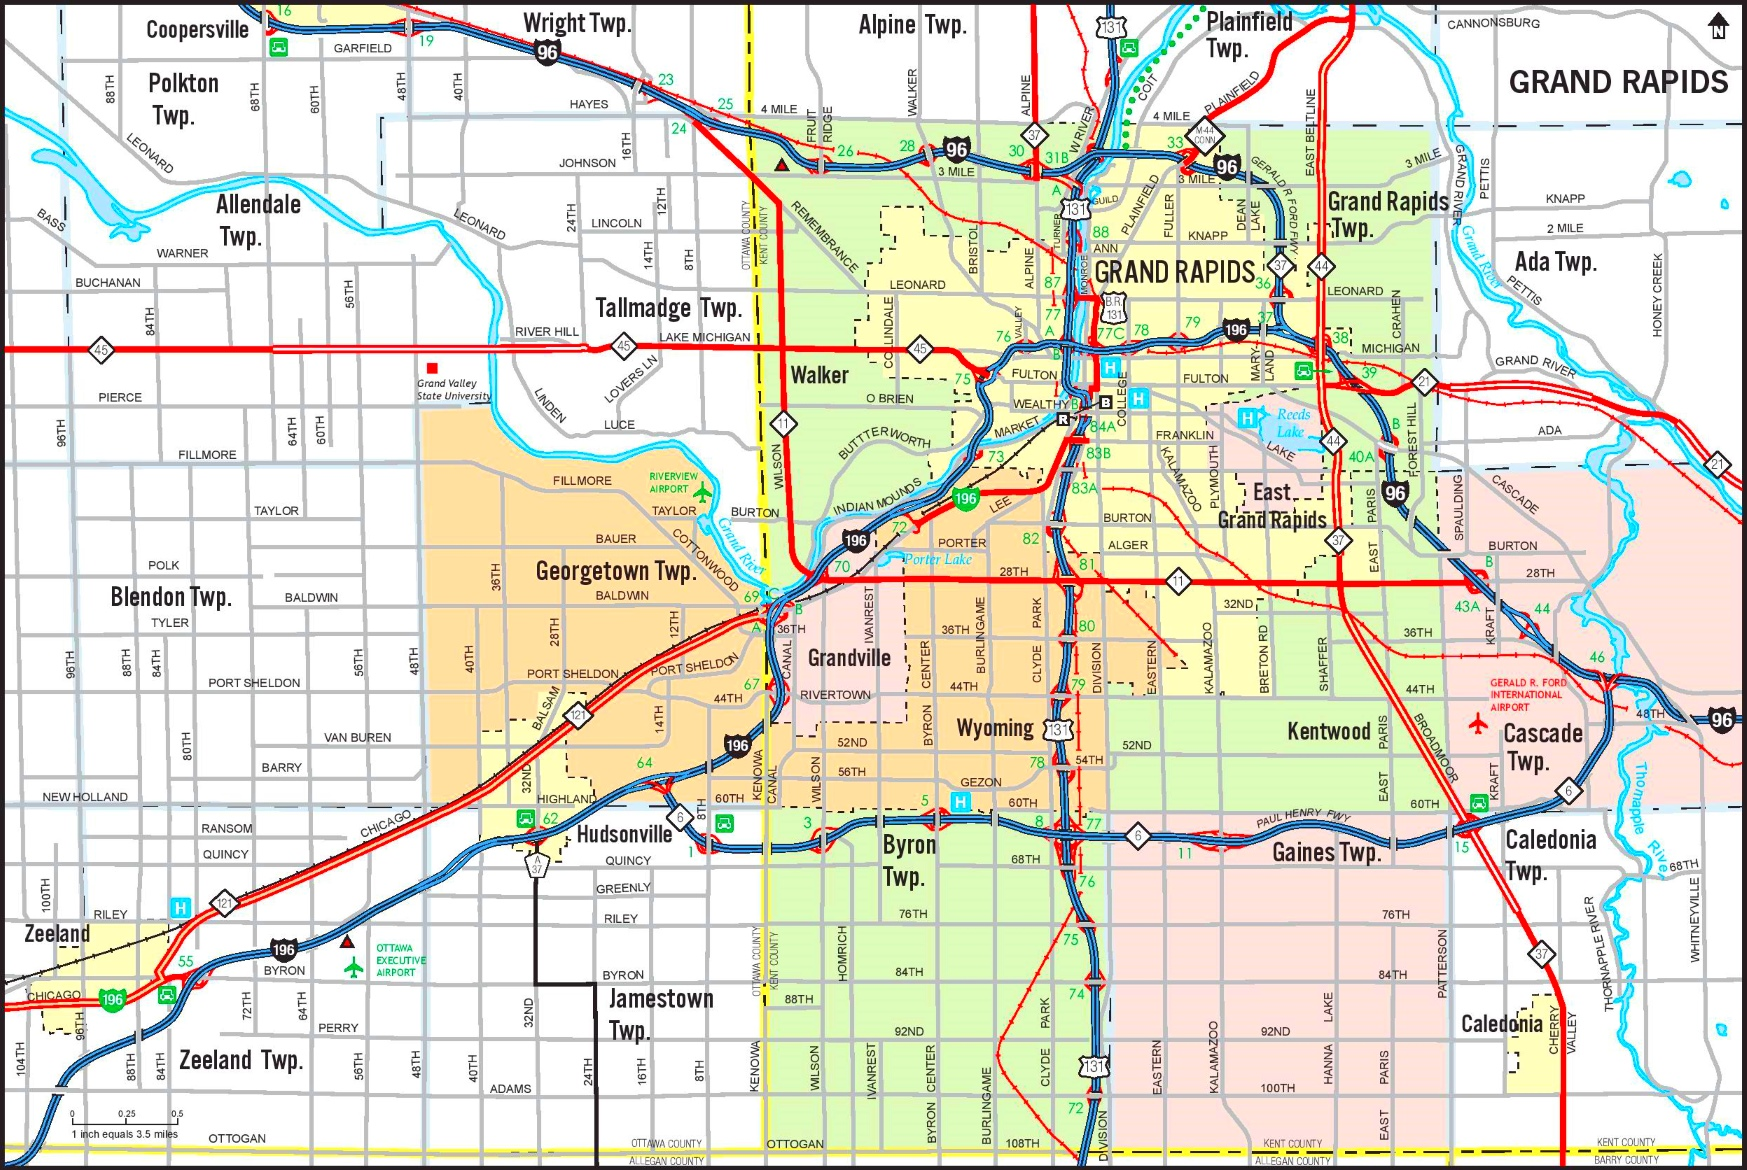 Grand Rapids area road map